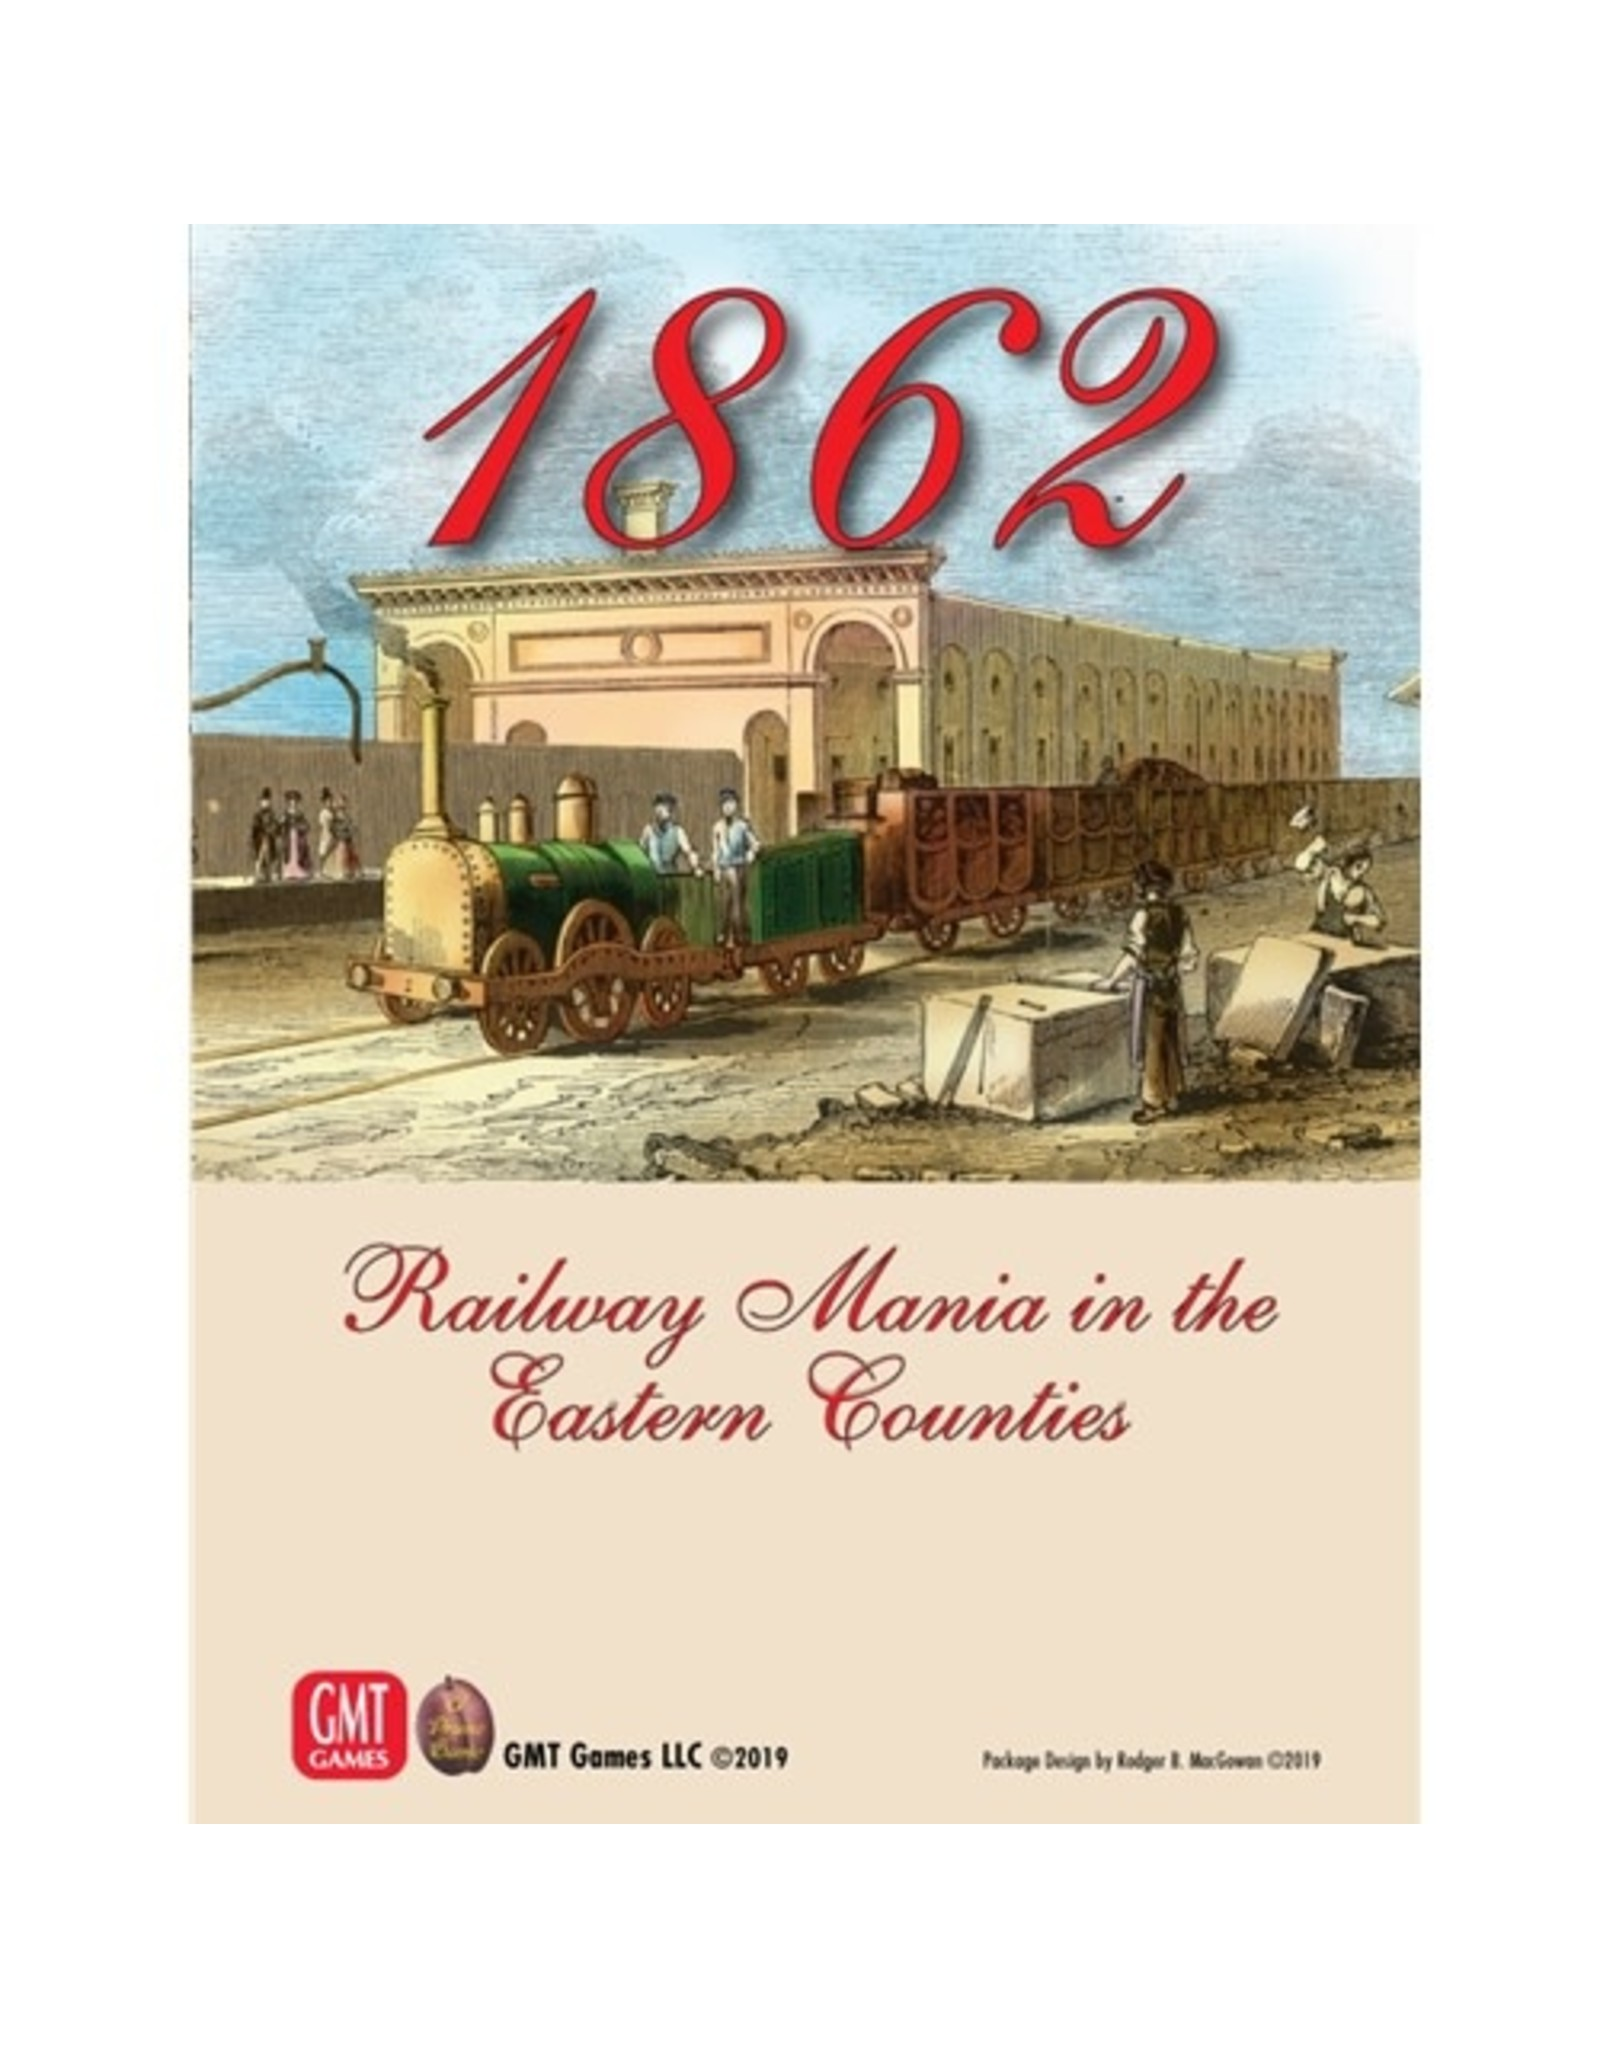 GMT 1862 Railway Mania in the Eastern Counties